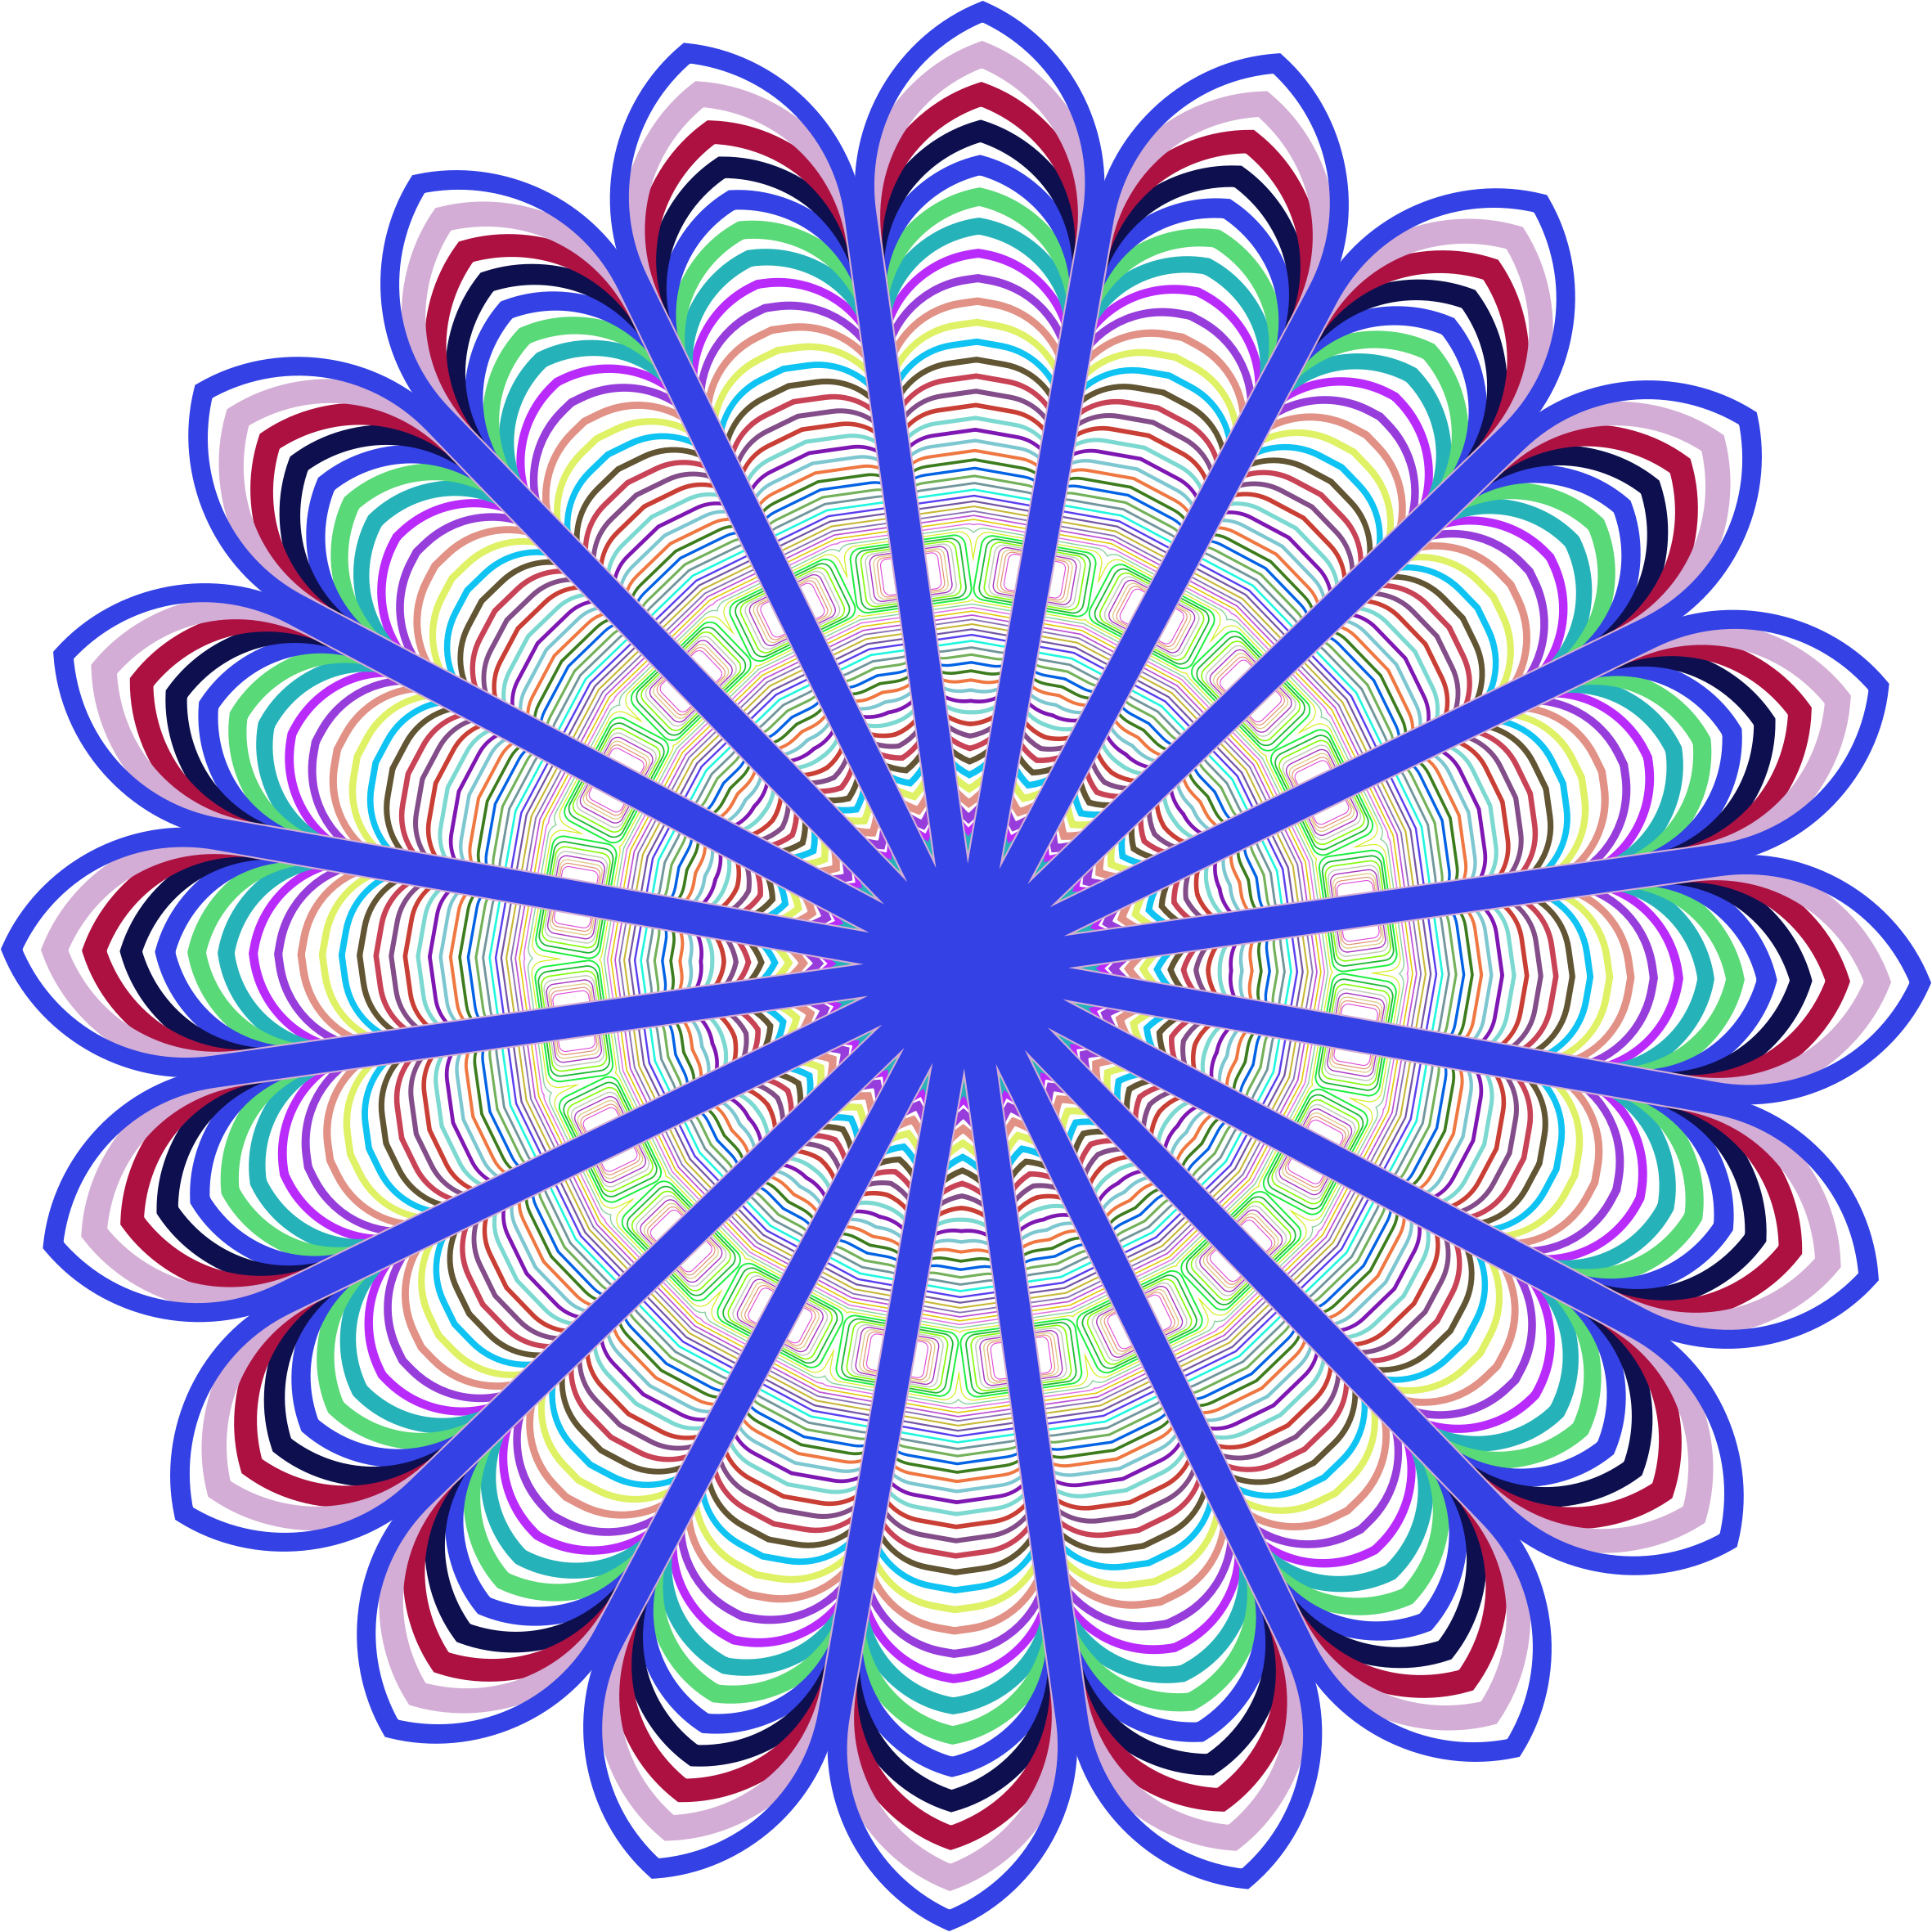 New Line Art Design : Clipart prismatic mandala line art design